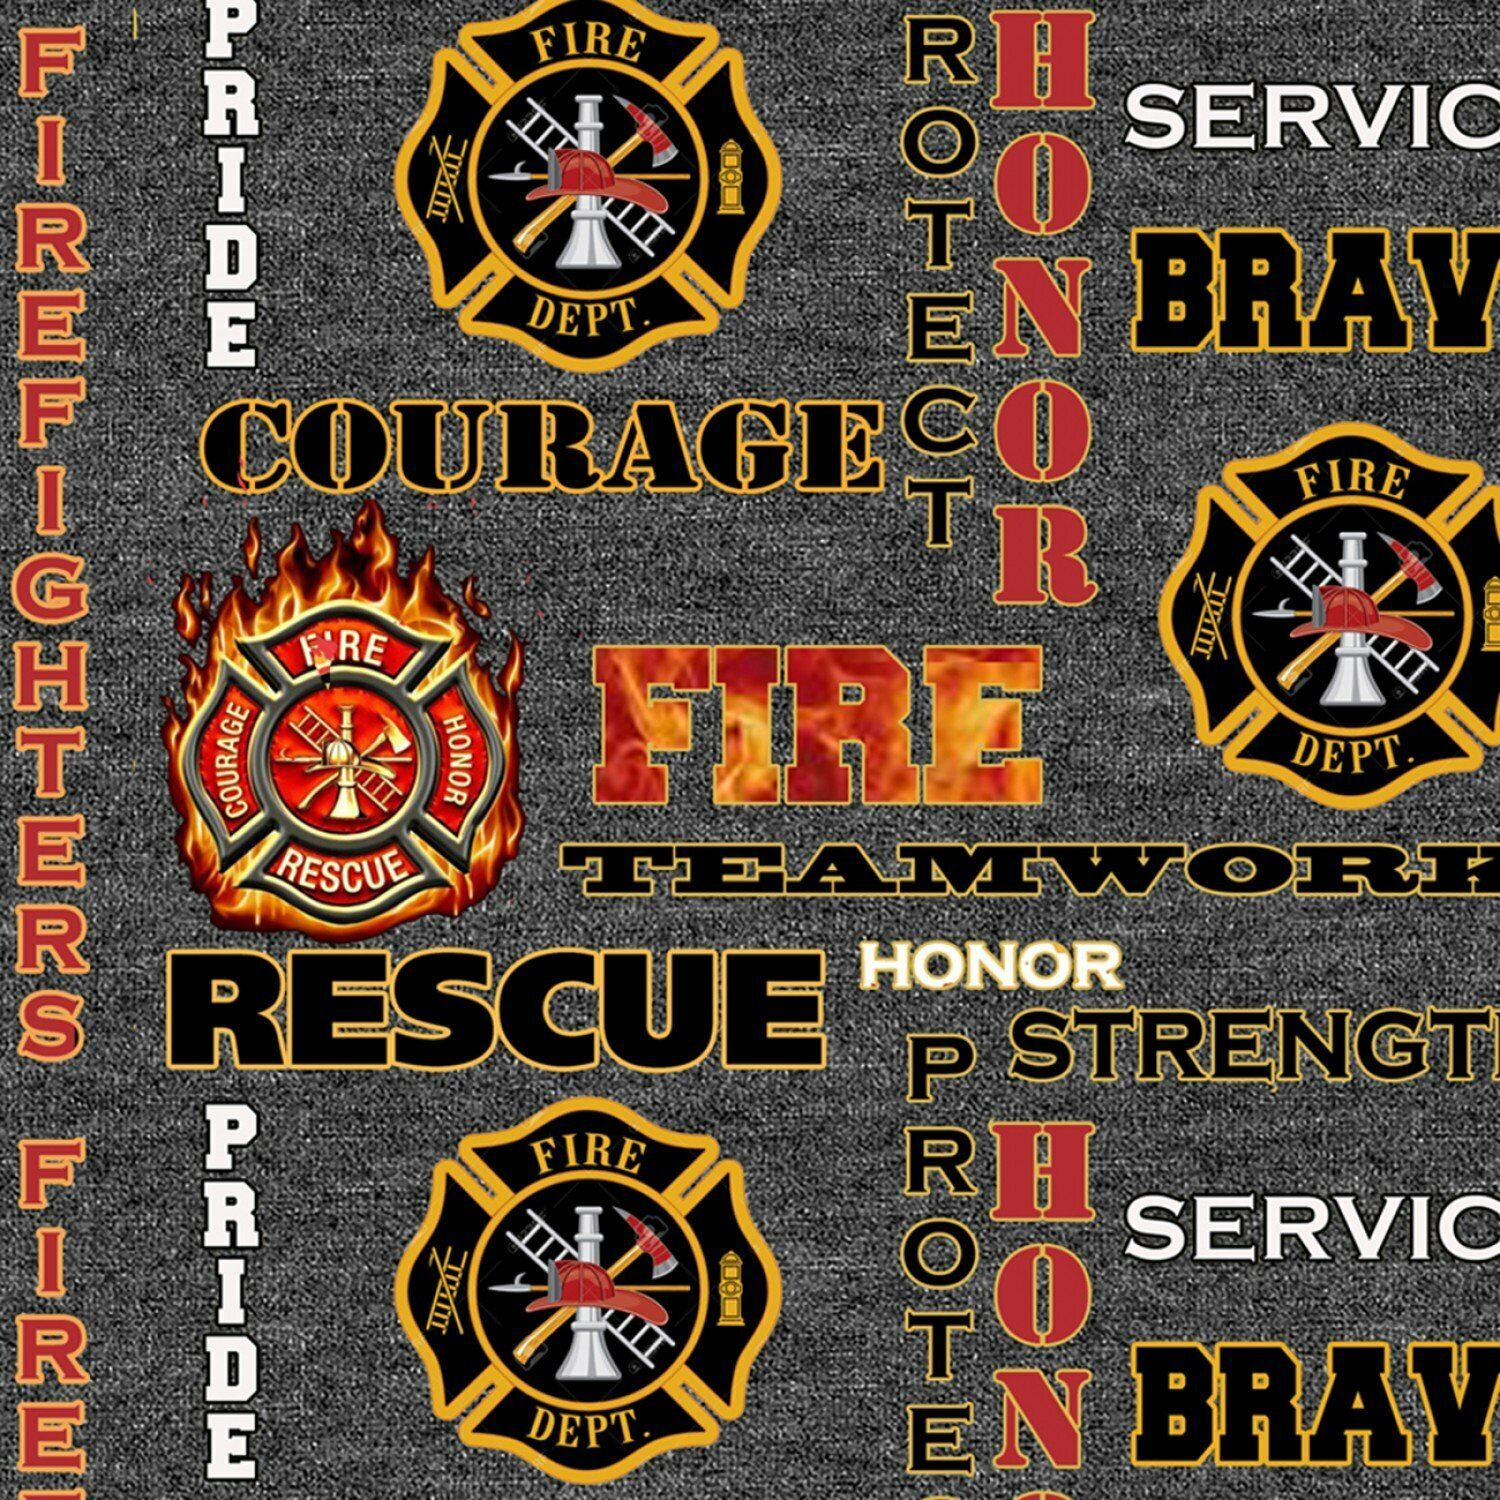 Fire Fighter Bravery Courage Pride Serve Sykel Heather Print